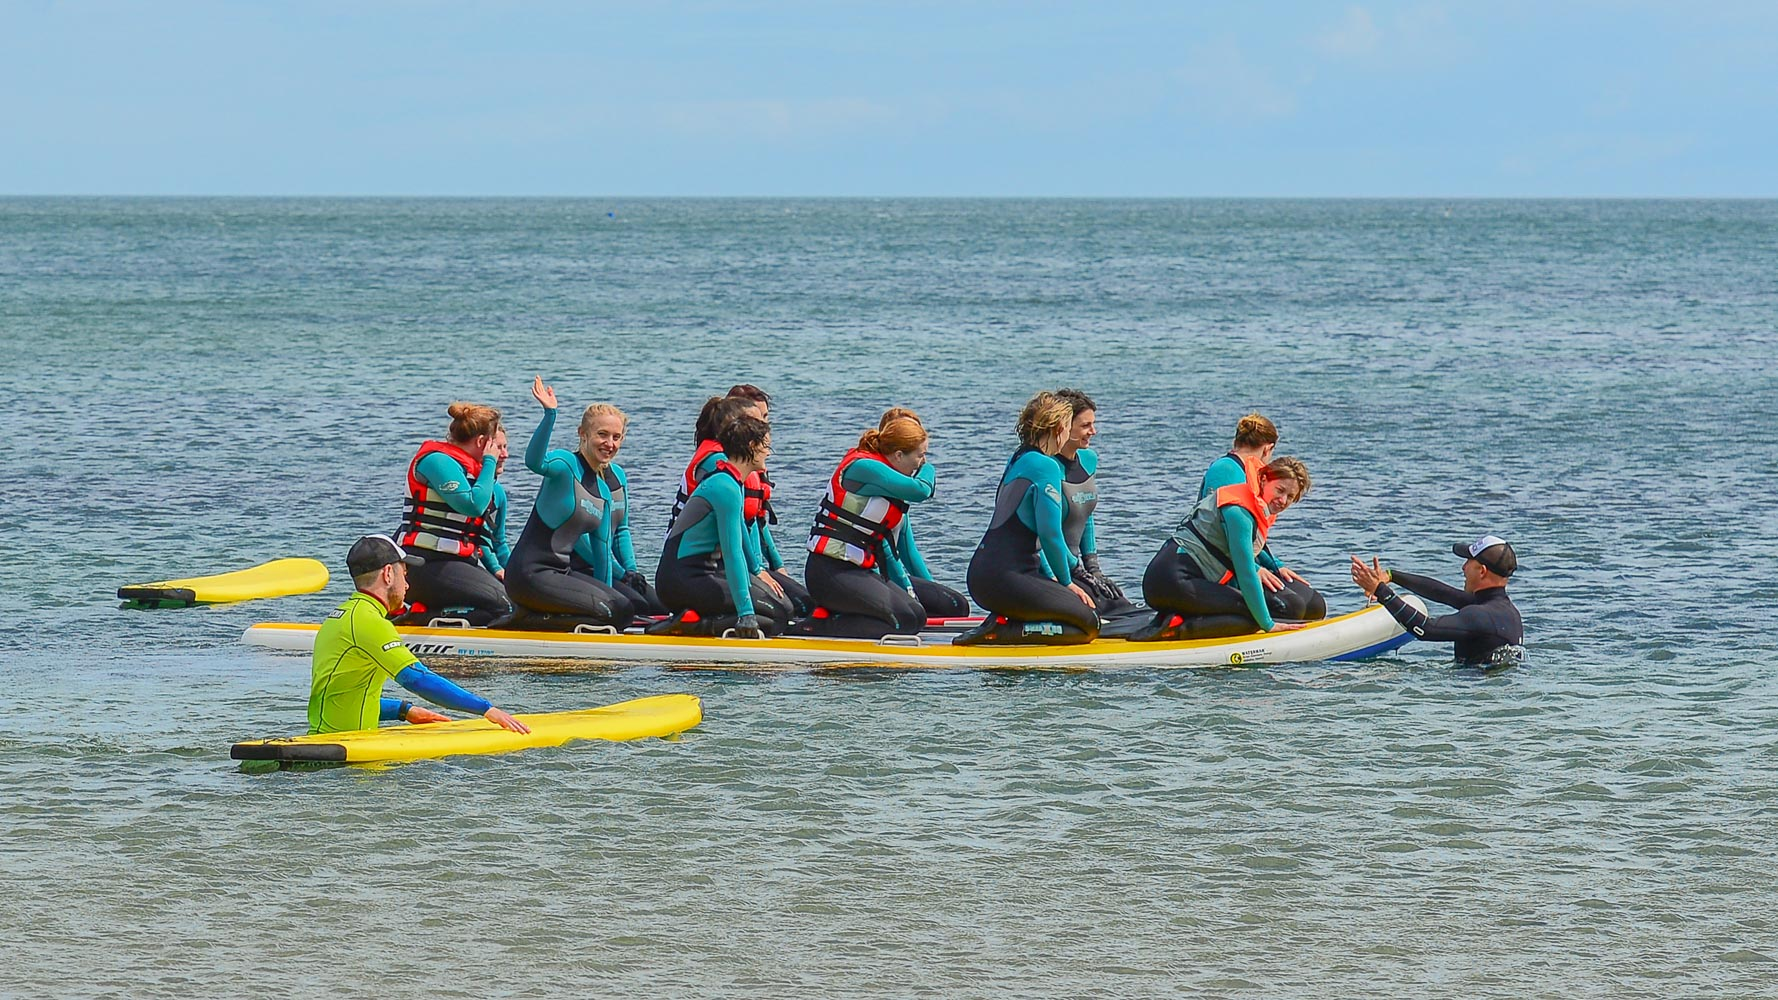 Hen Surf Party all paddling on a 10 person surfboard